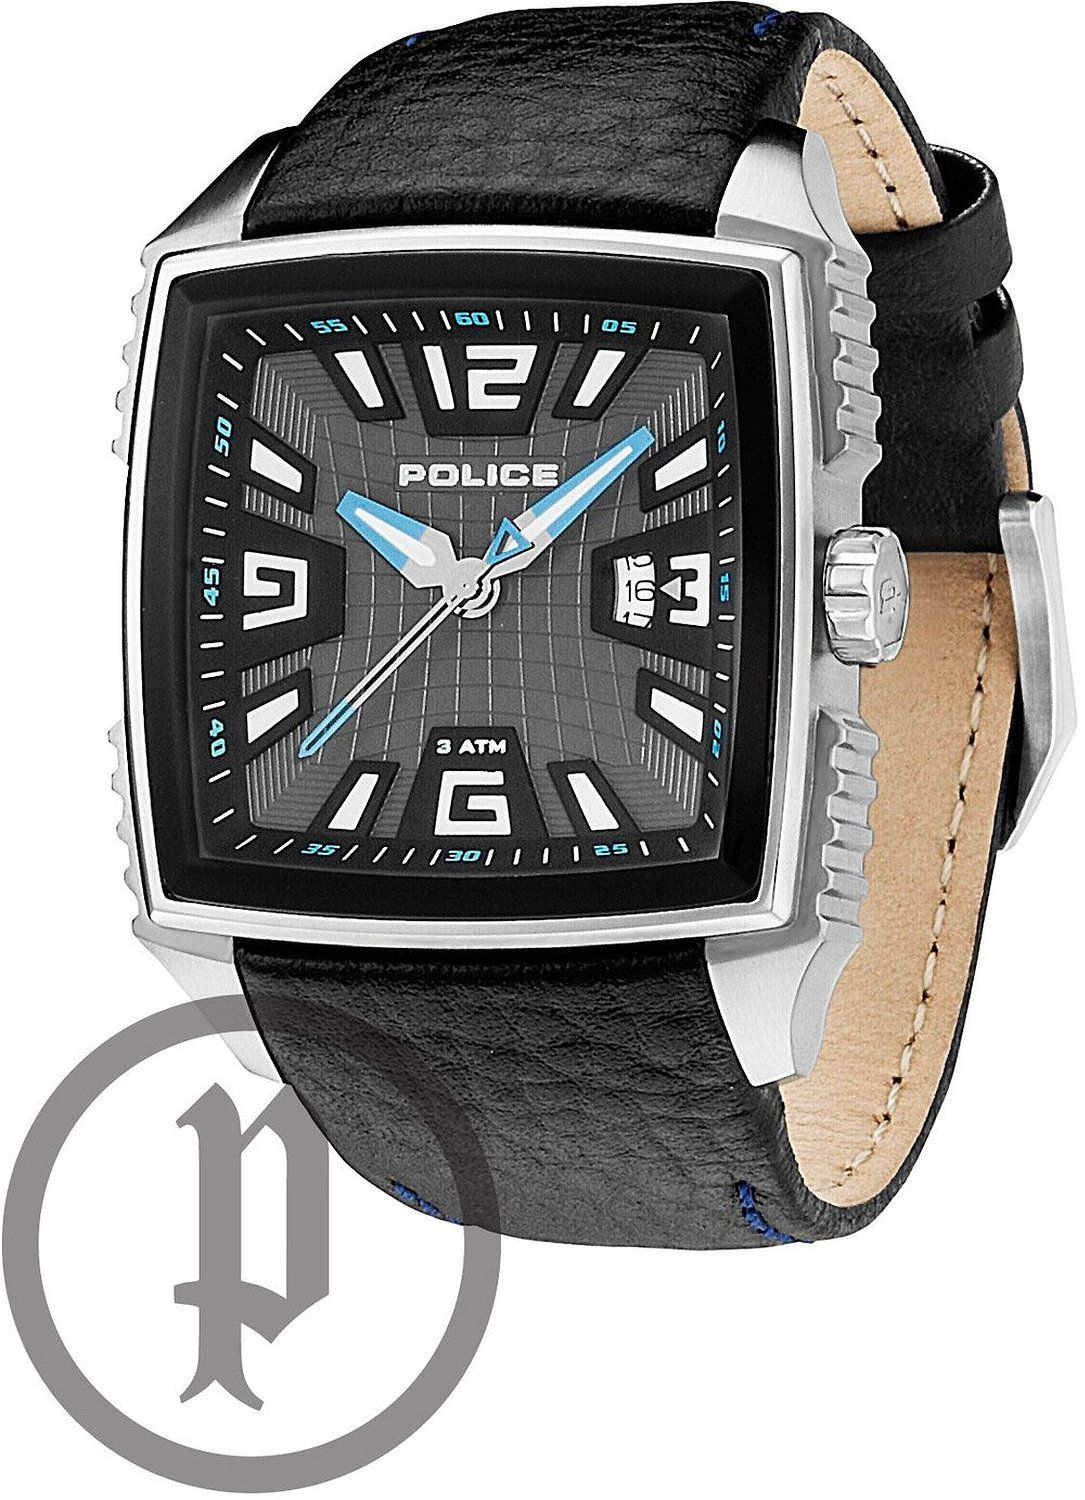 co ukWatches Gents Patrol 61Amazon Police 13839js Watch bf76gYvy